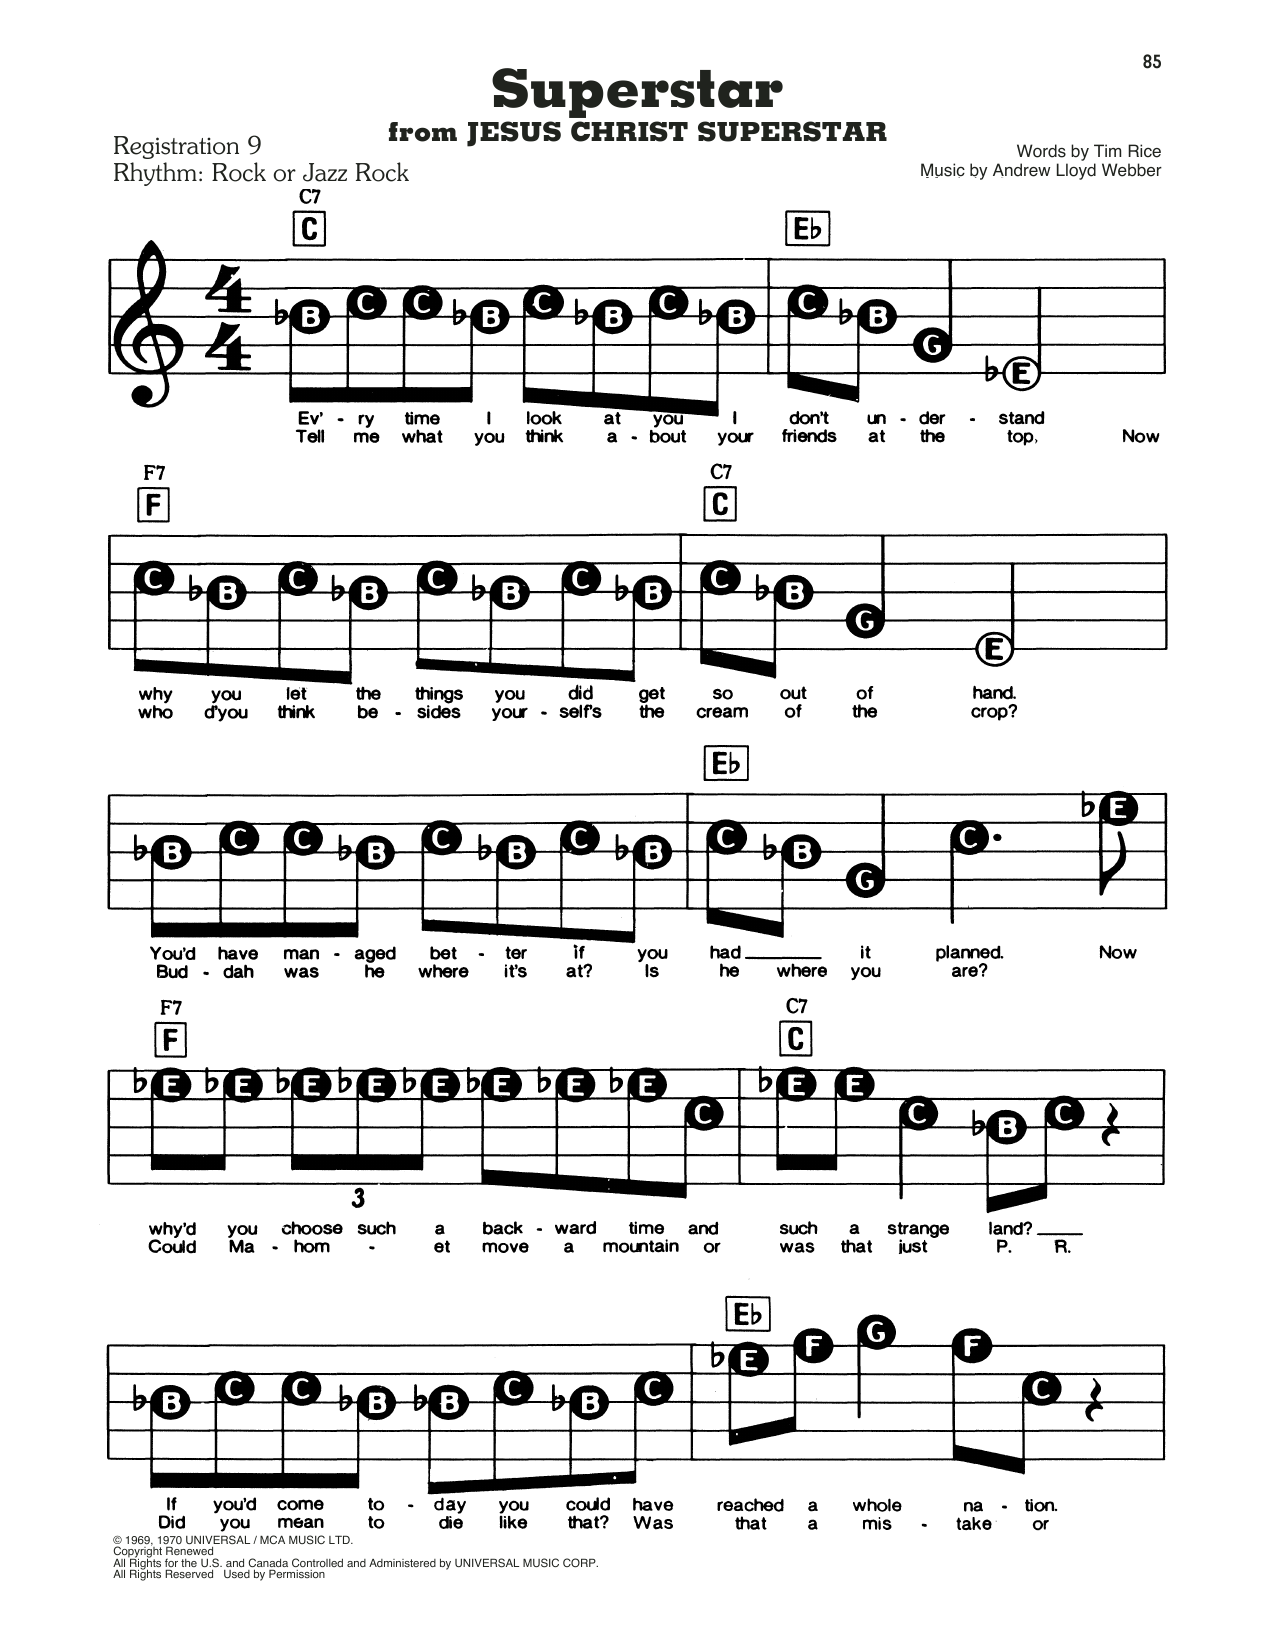 Andrew Lloyd Webber Superstar sheet music notes and chords. Download Printable PDF.